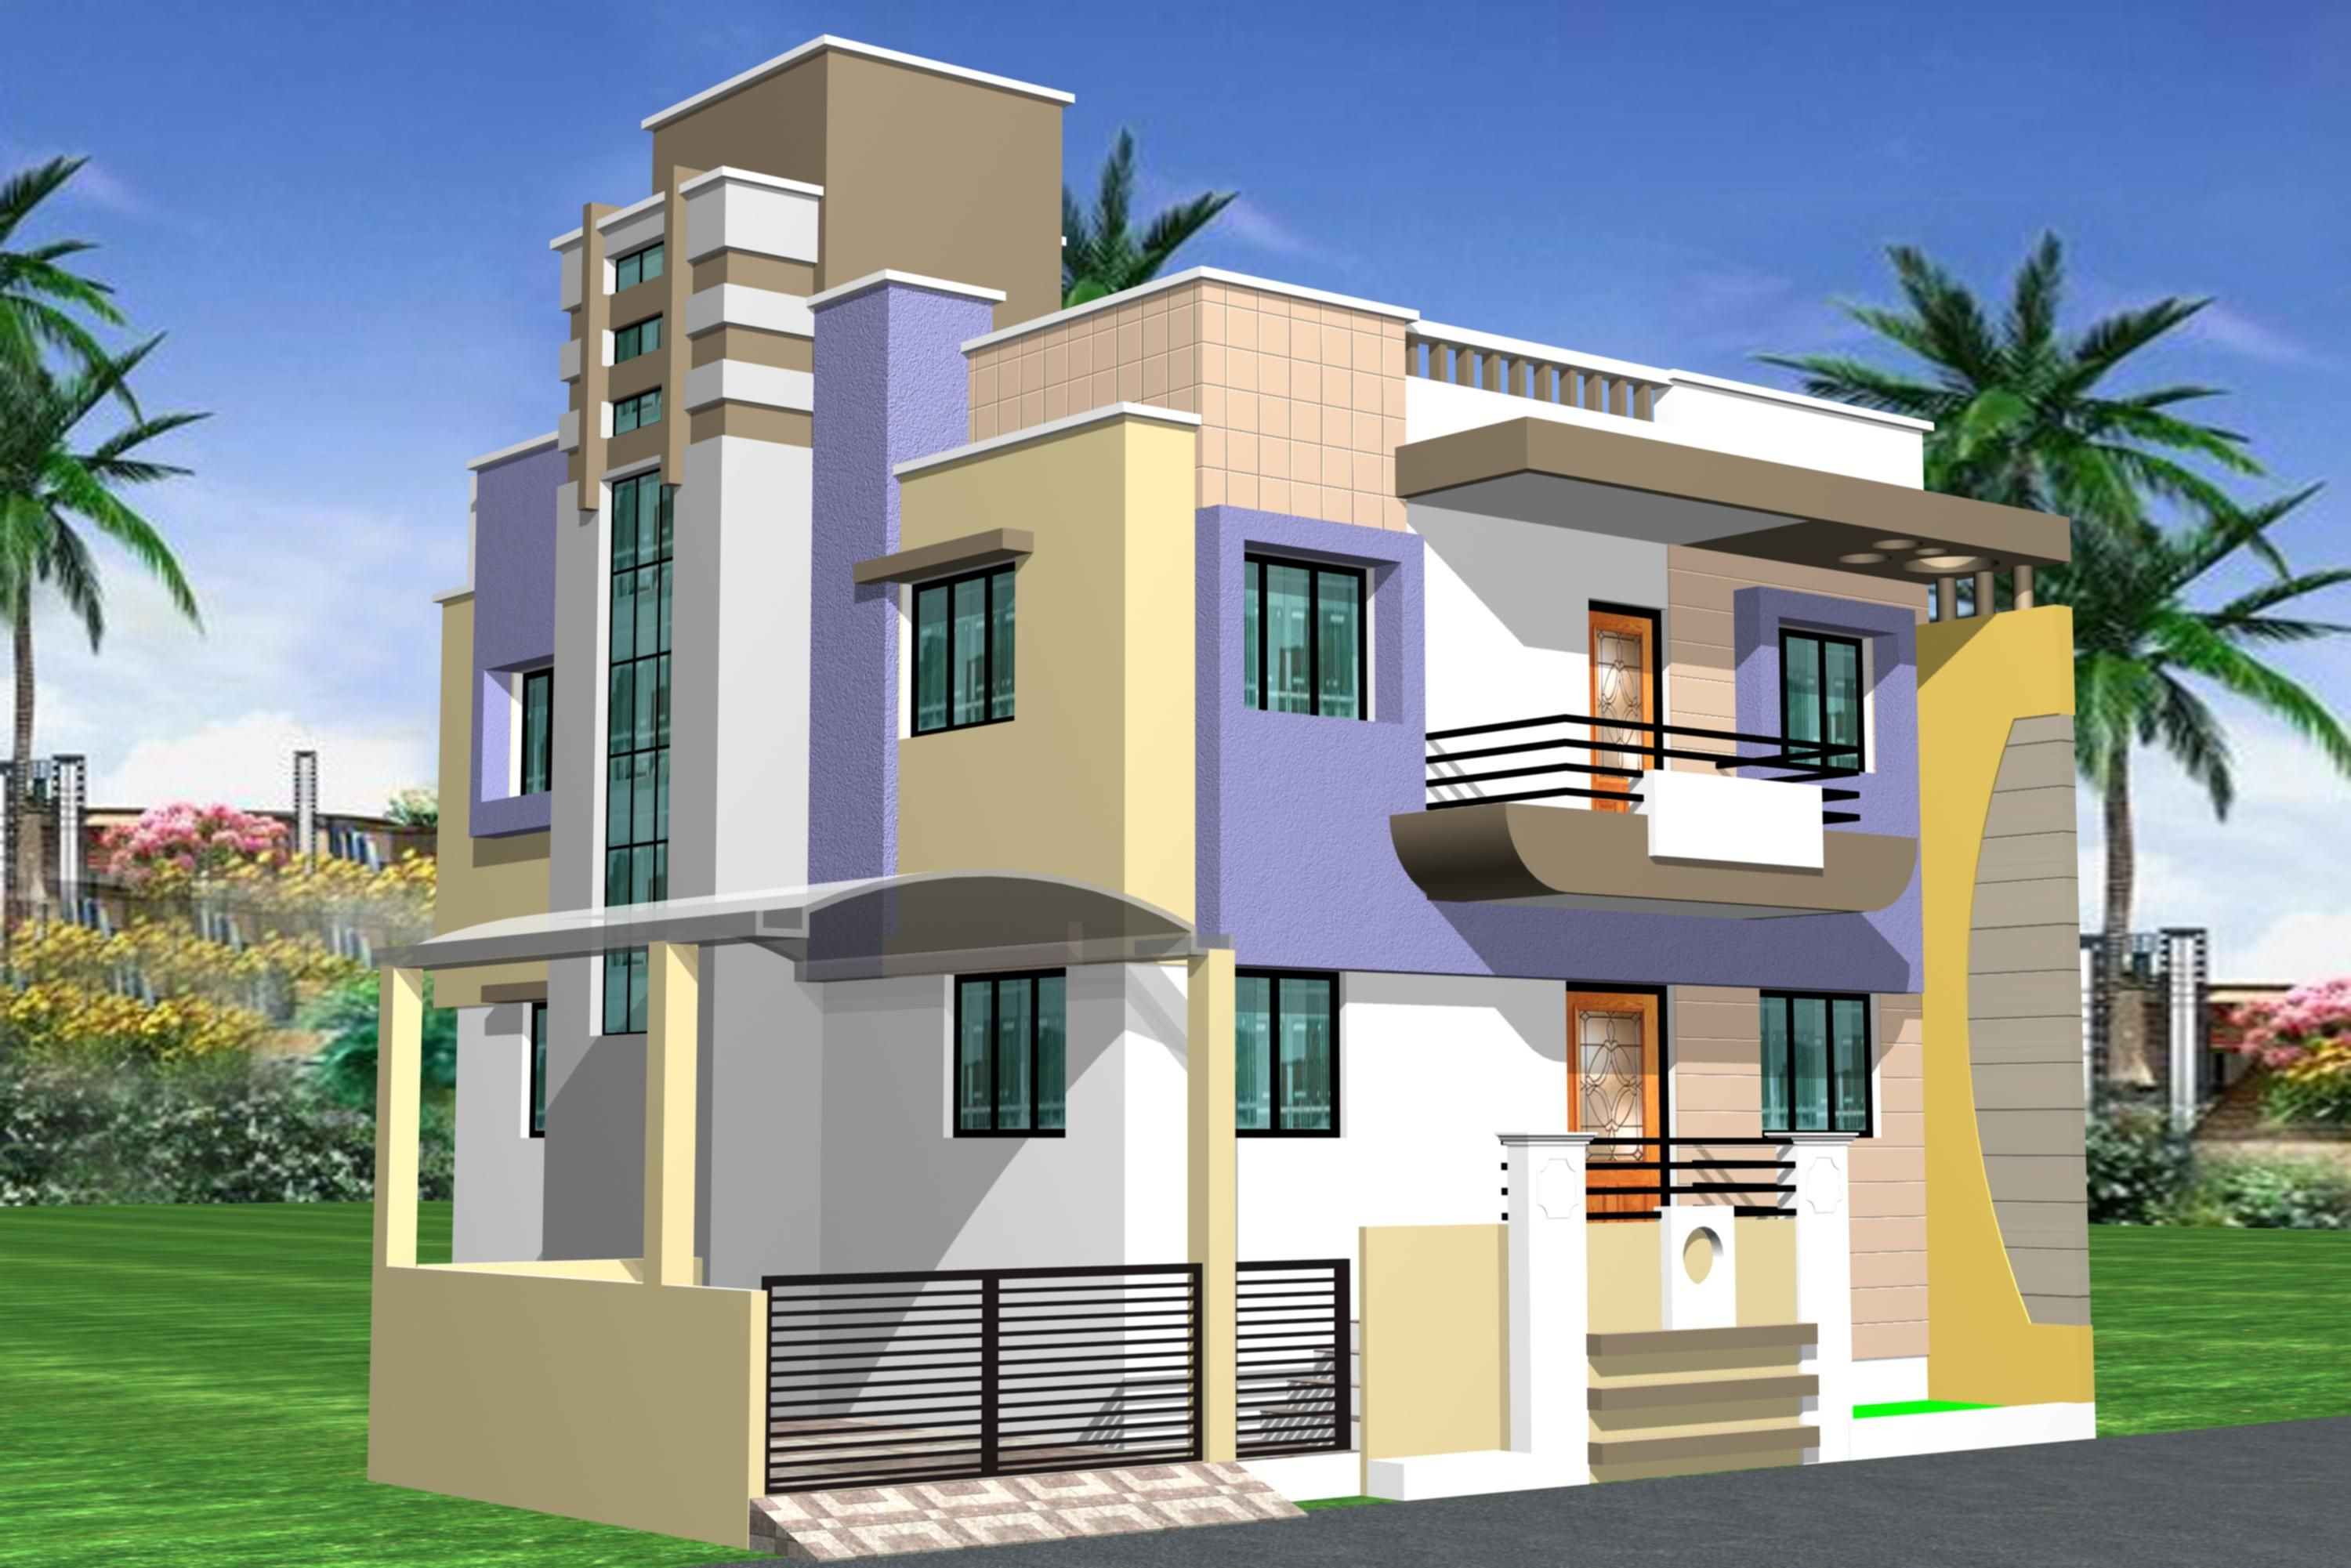 Simple house model in tamilnadu House plans and ideas